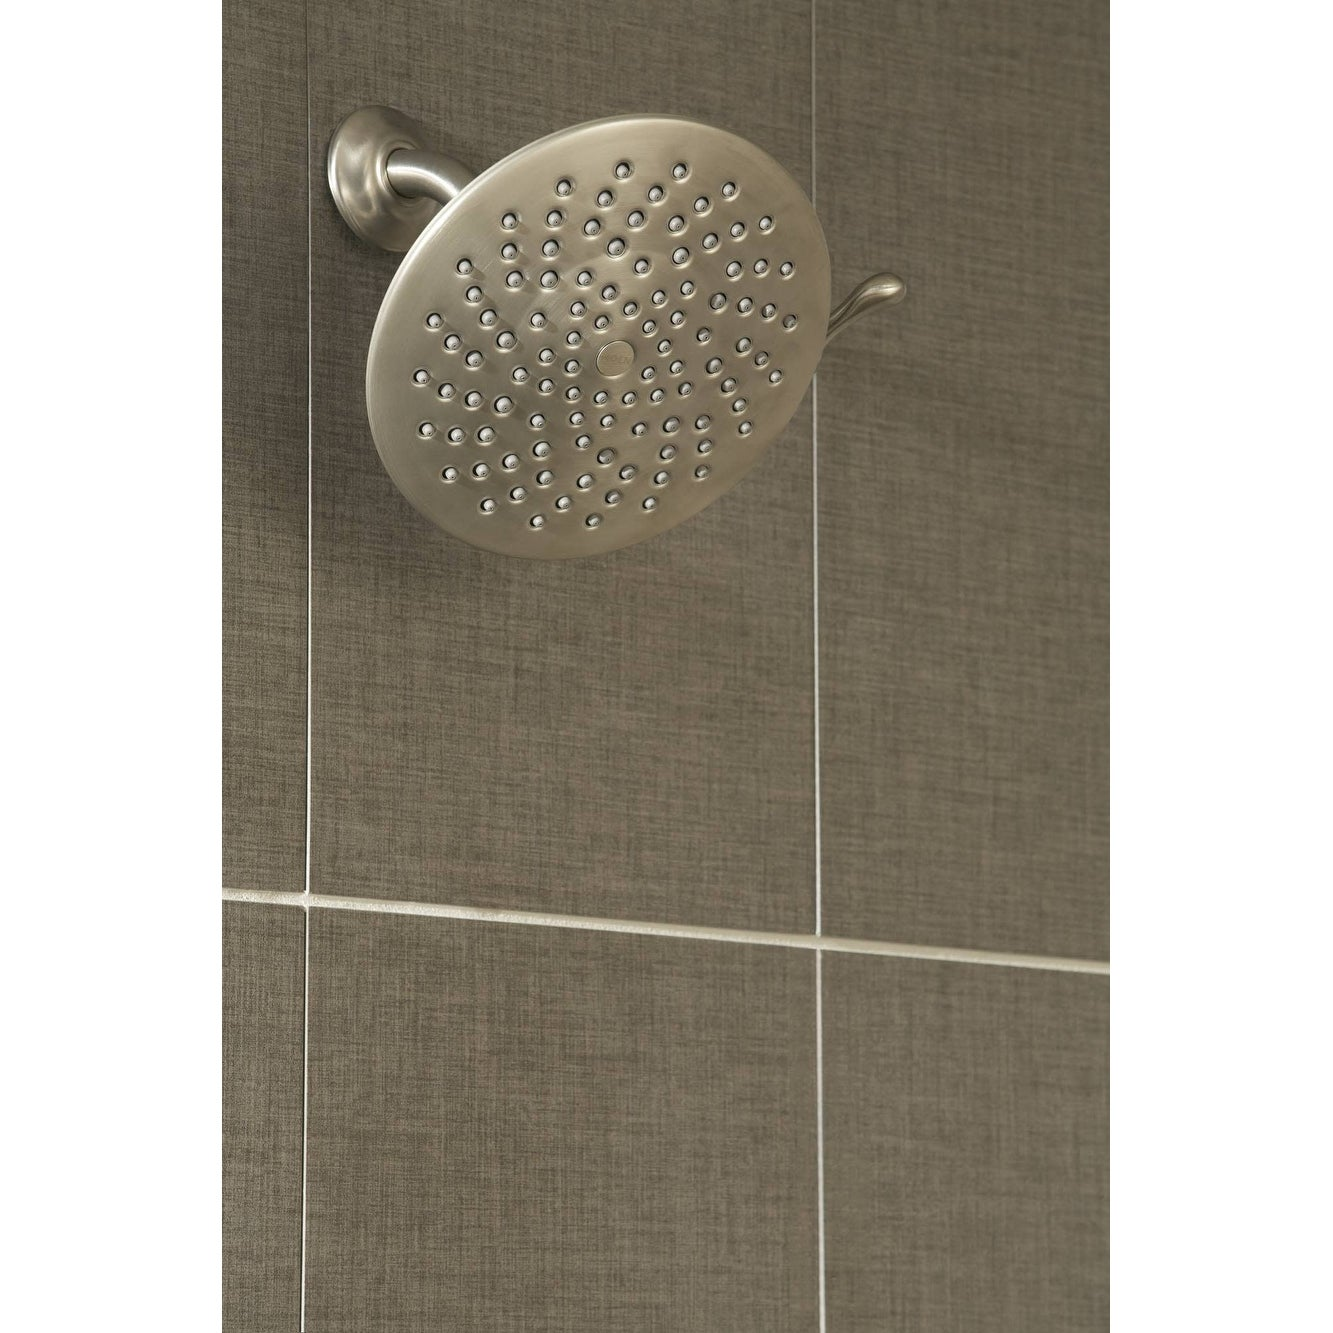 Moen S6320 8 Multi Function Rainshower Shower Head From The Velocity Collection